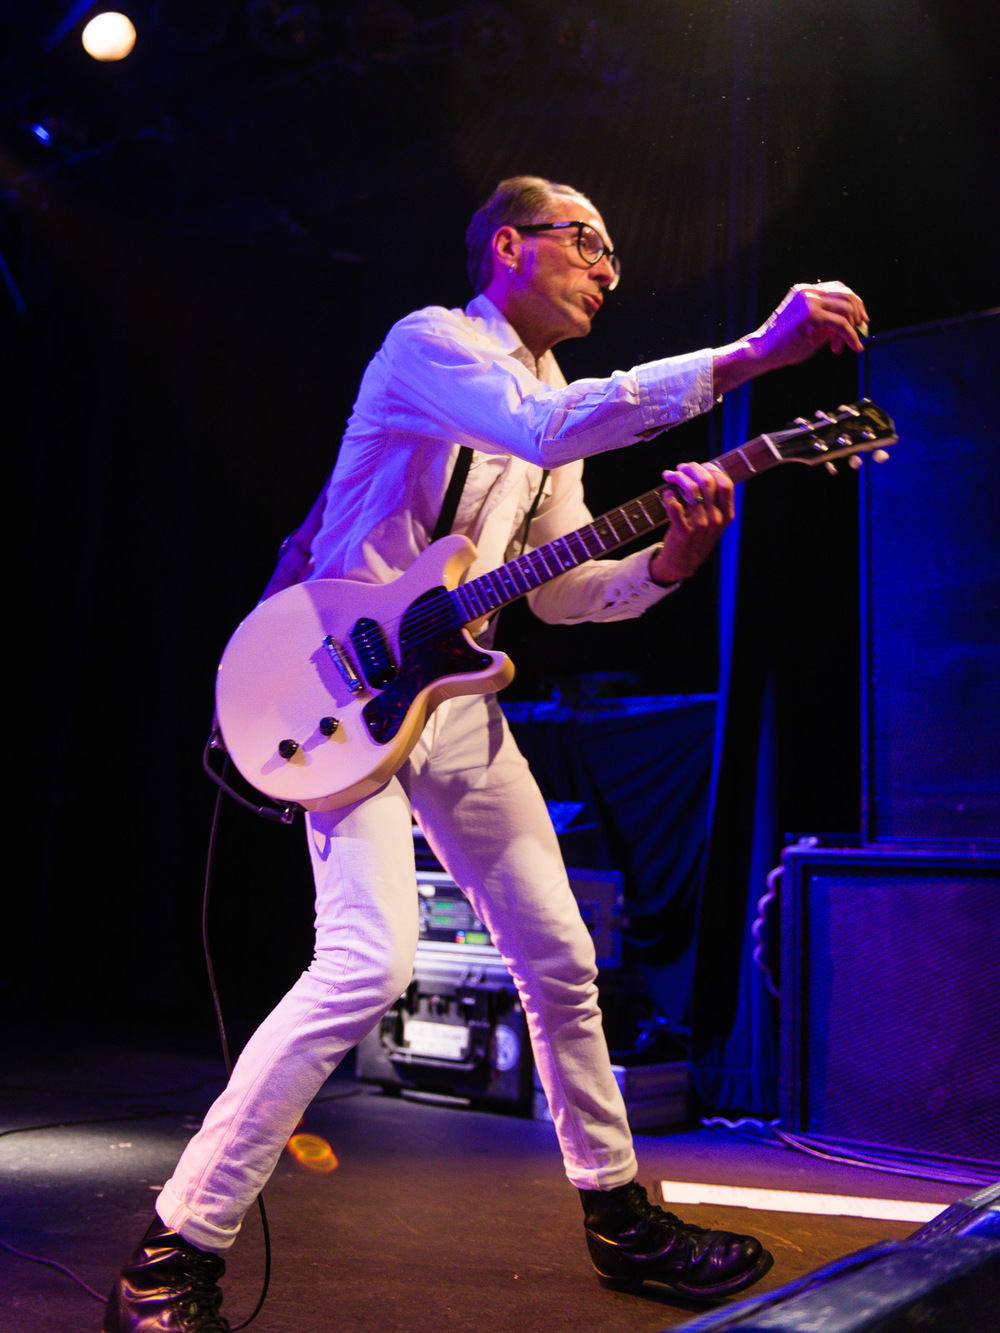 Bad_Religion_Commodore_Ballroom_Nguyen_Tim-7.jpg